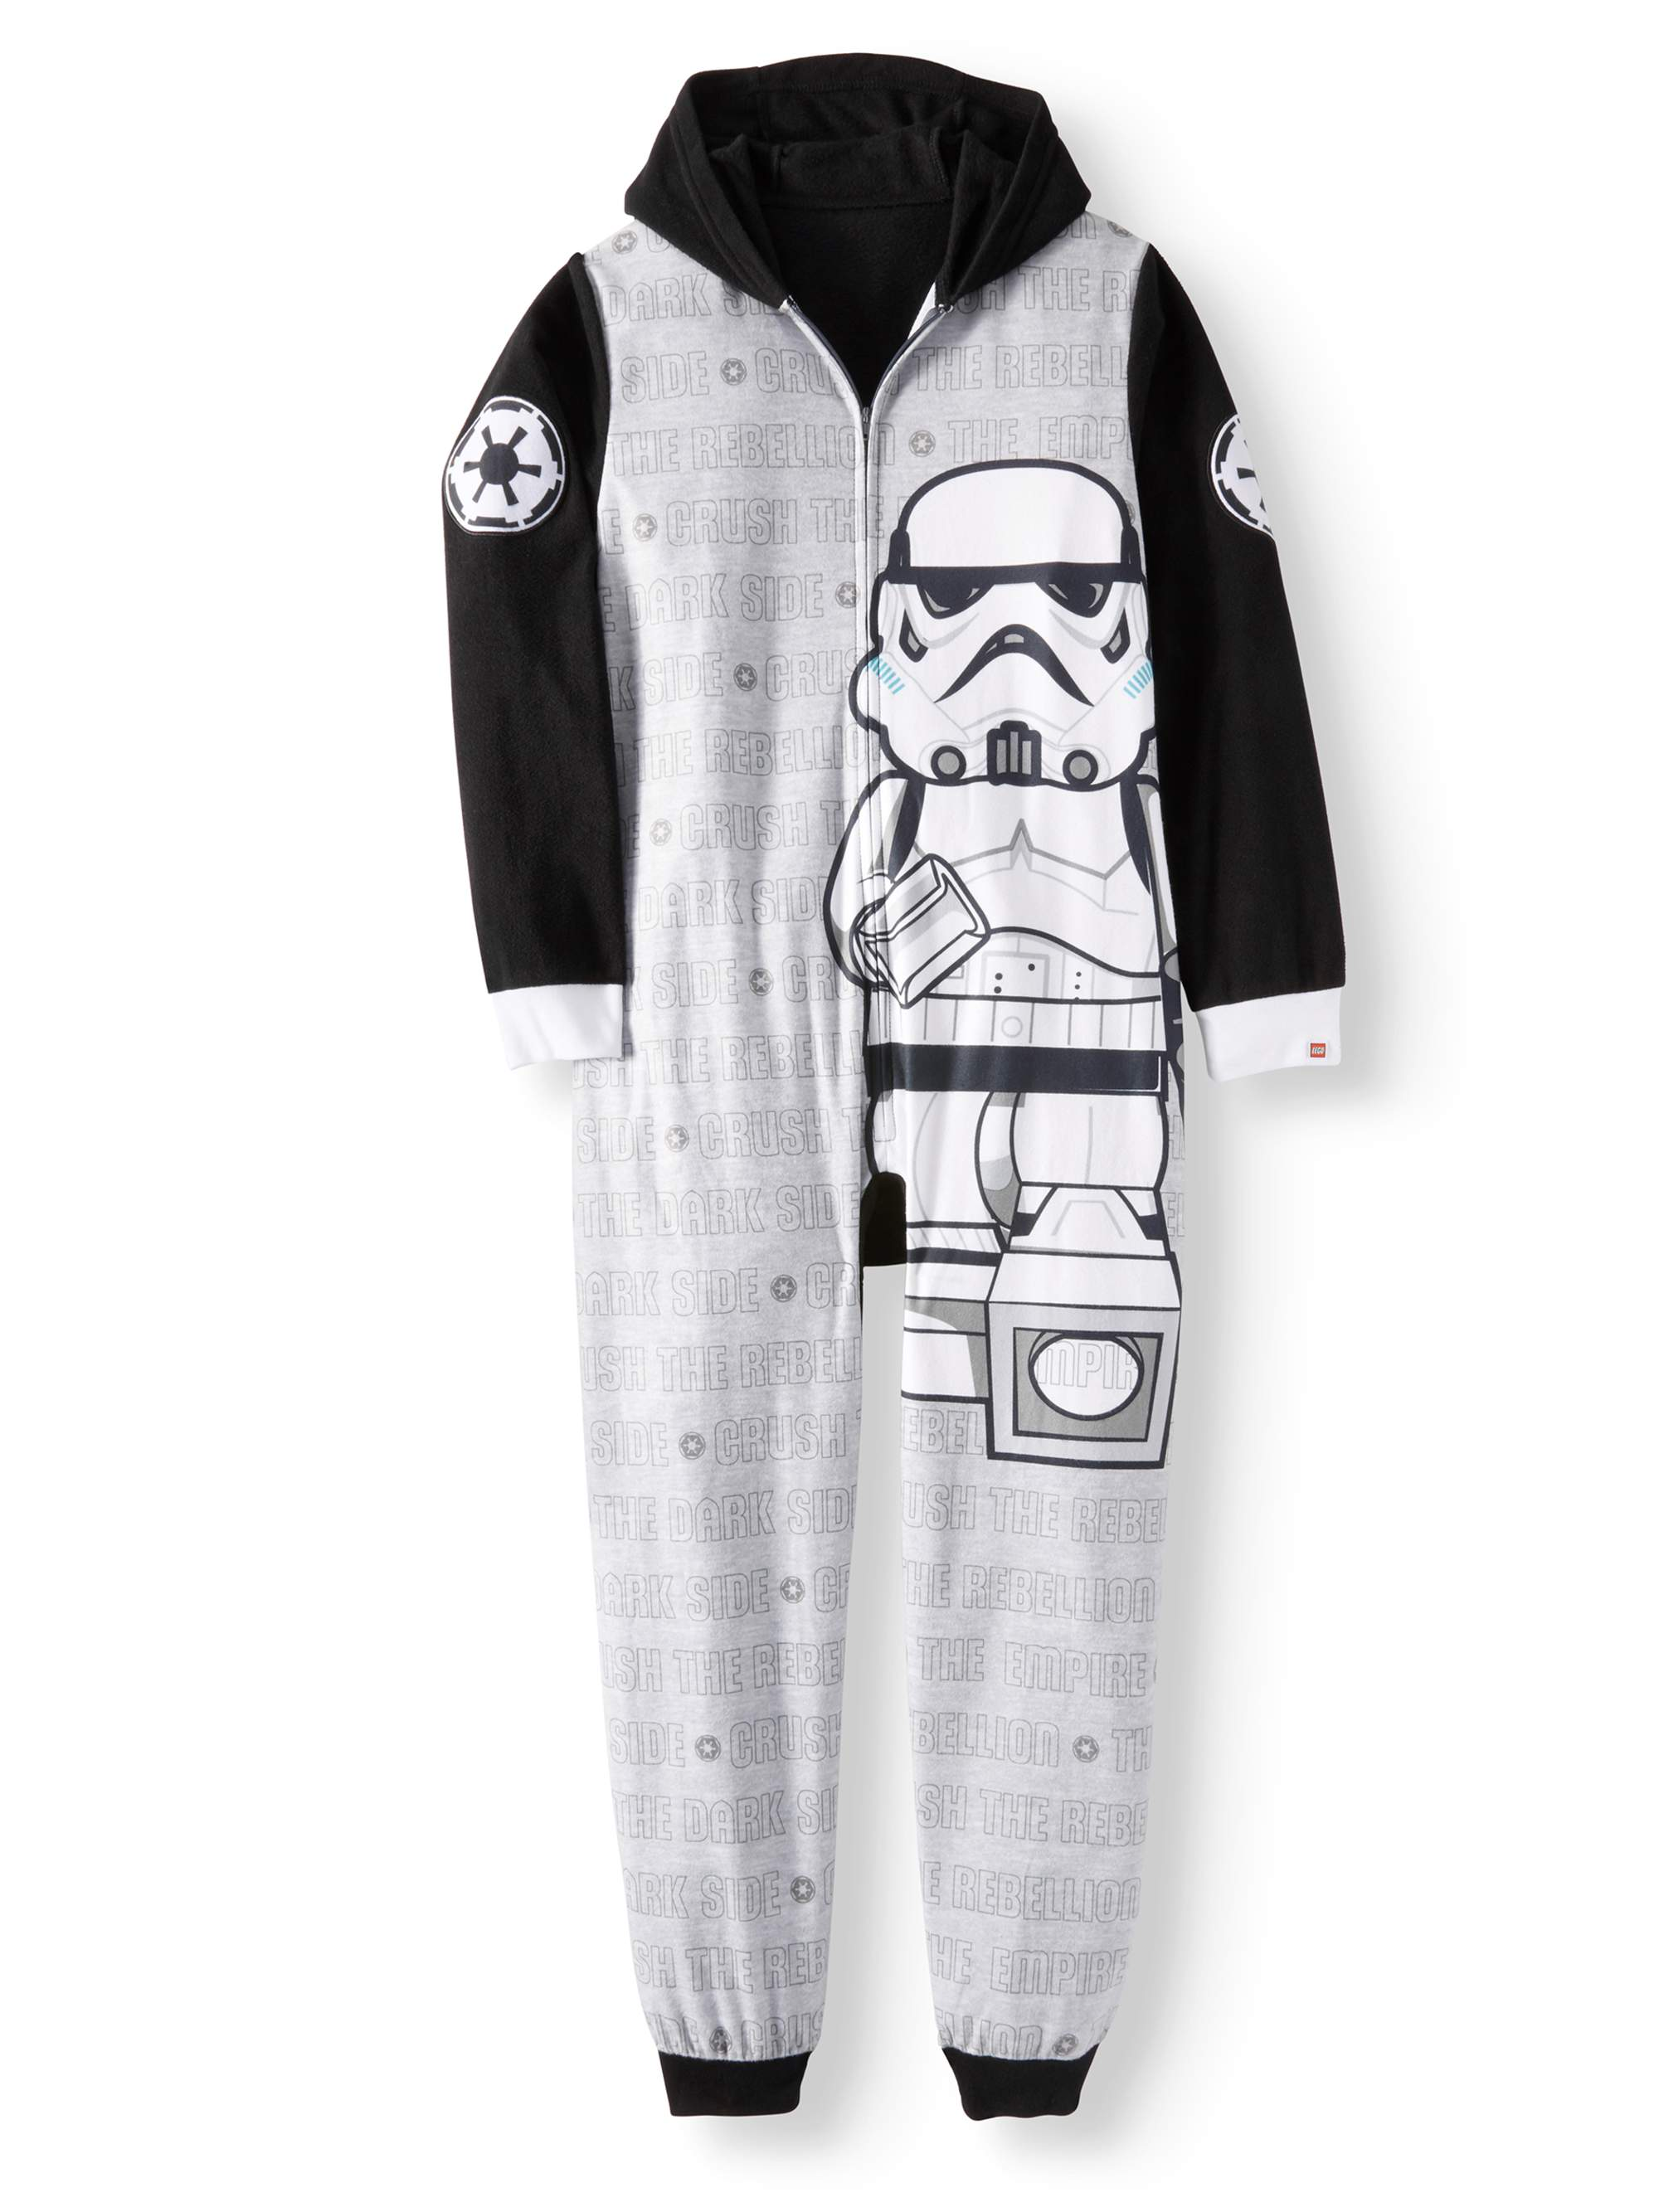 Lego Star Wars Union Suit Pajama (Big Boy & Little Boy)